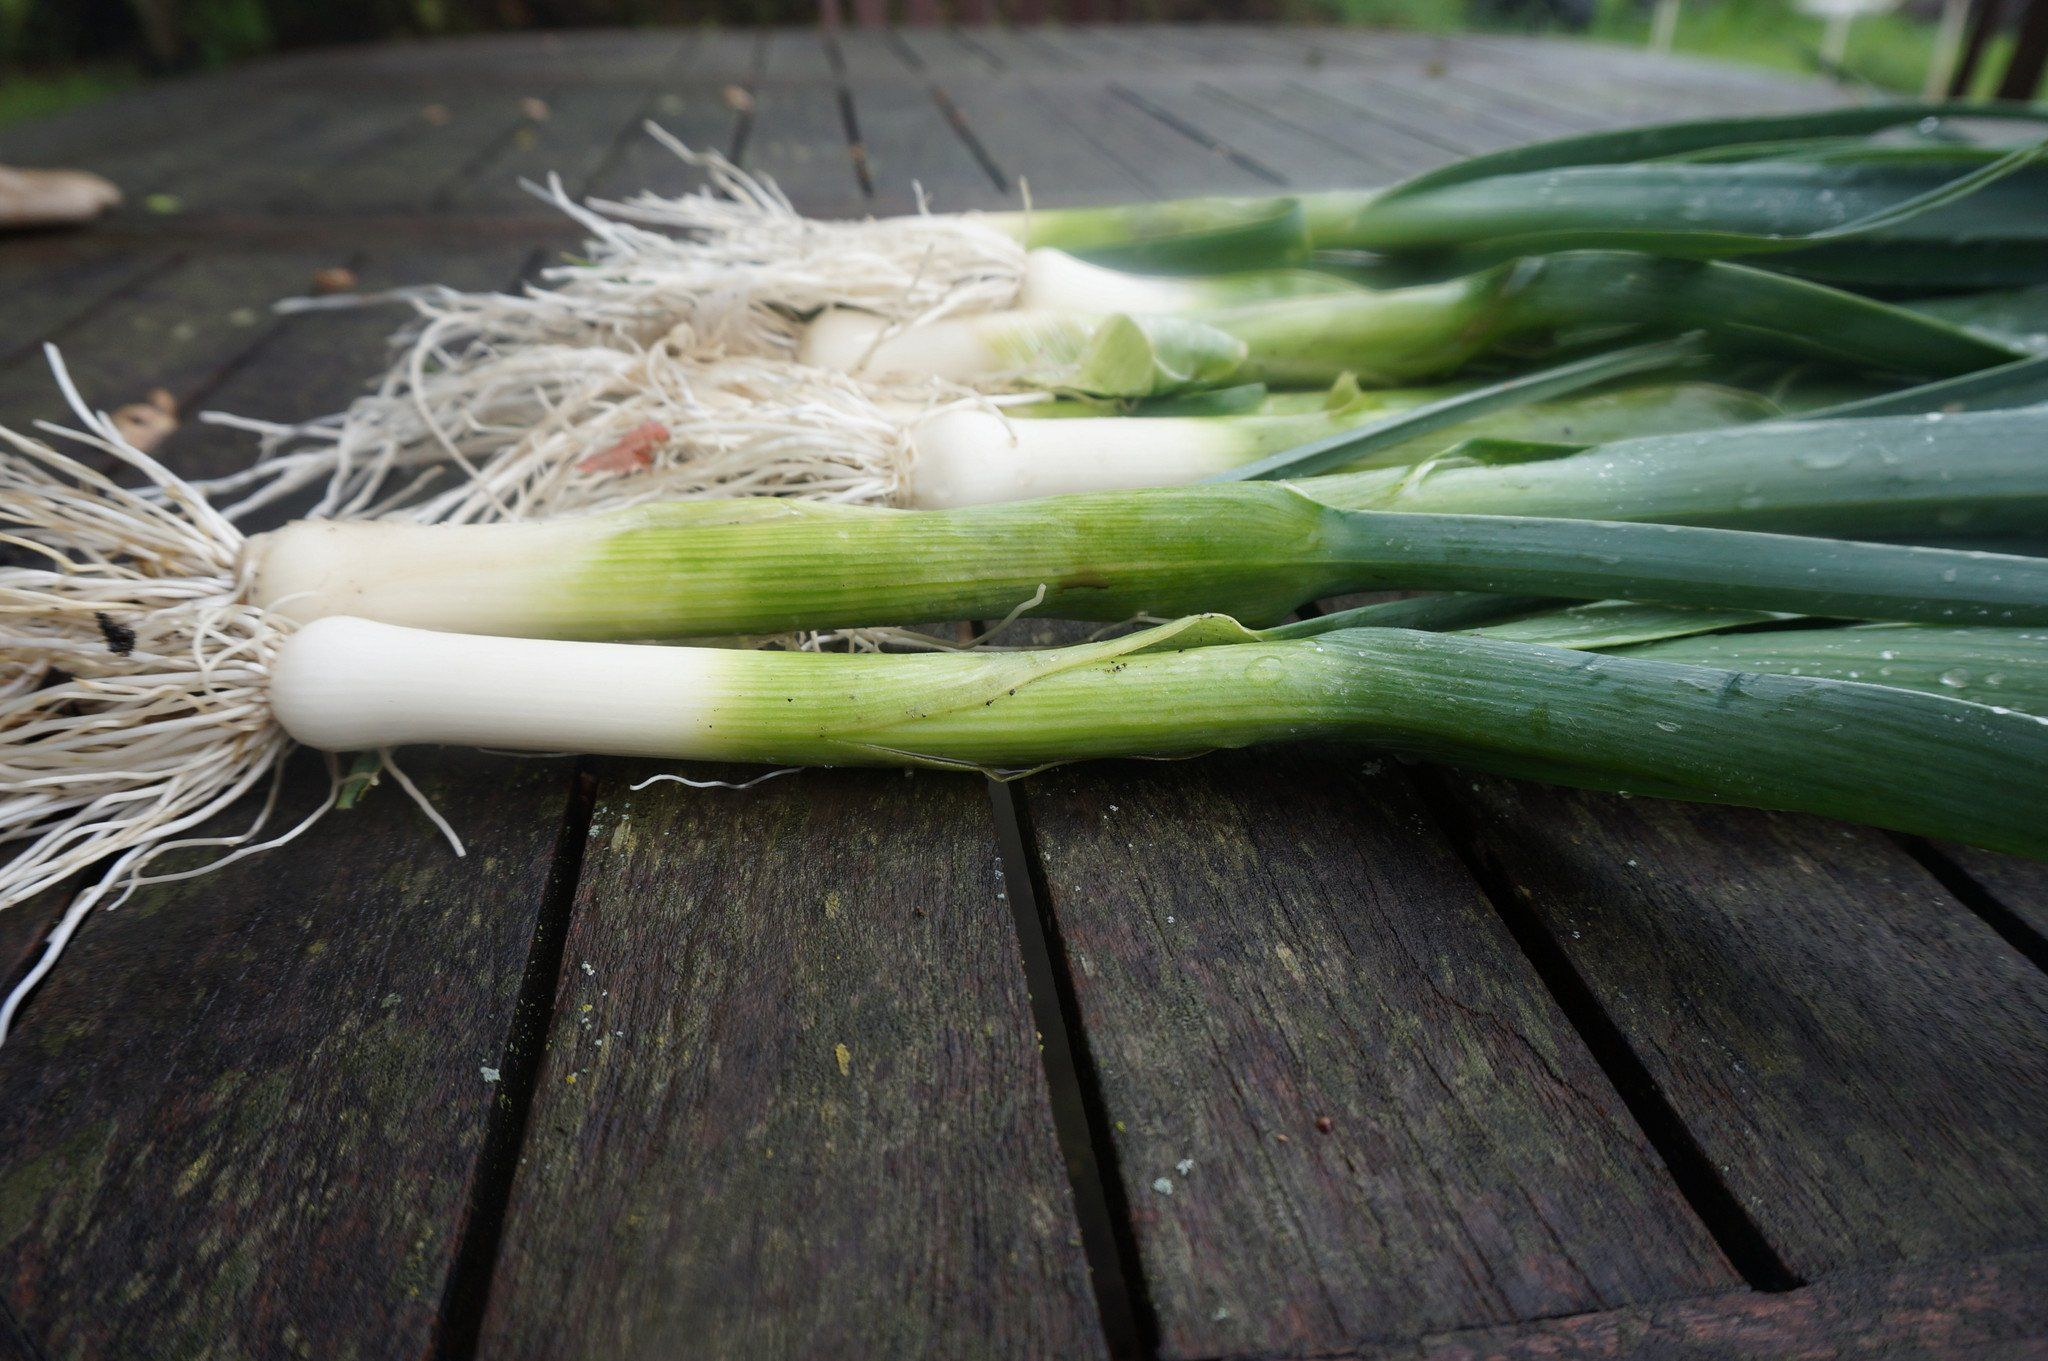 The Humble Leek: The Link Between Nutrition and Flavor